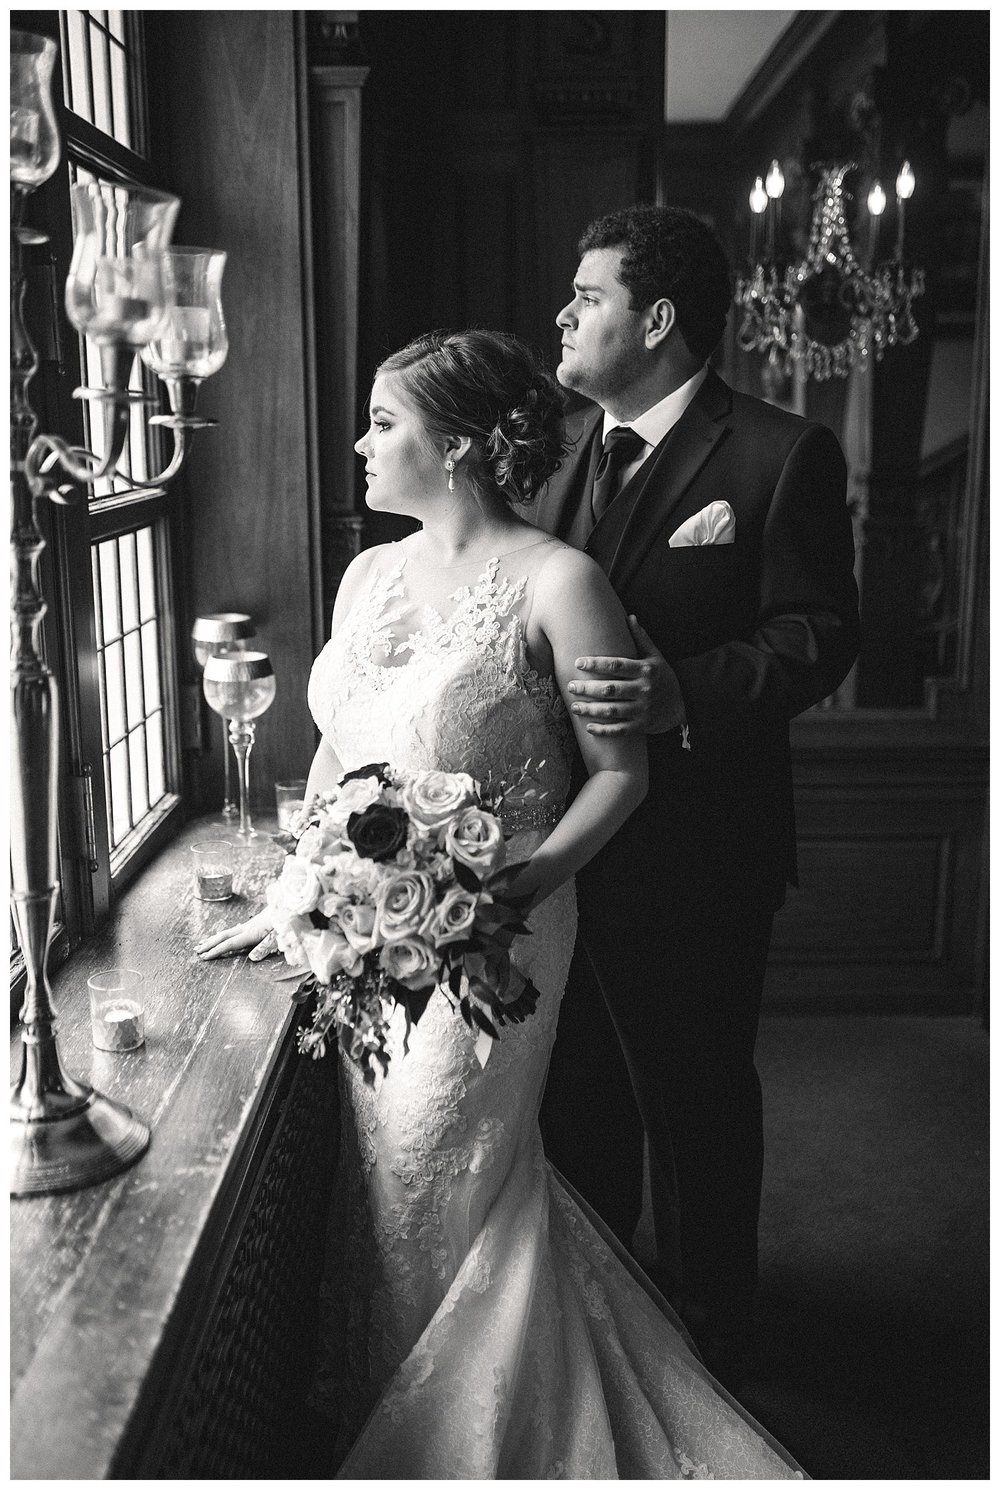 Kelsey_Diane_Photography_Loose_Mansion_Wedding_Photography_Kansas_City_Victor_Lyndsay_0125.jpg